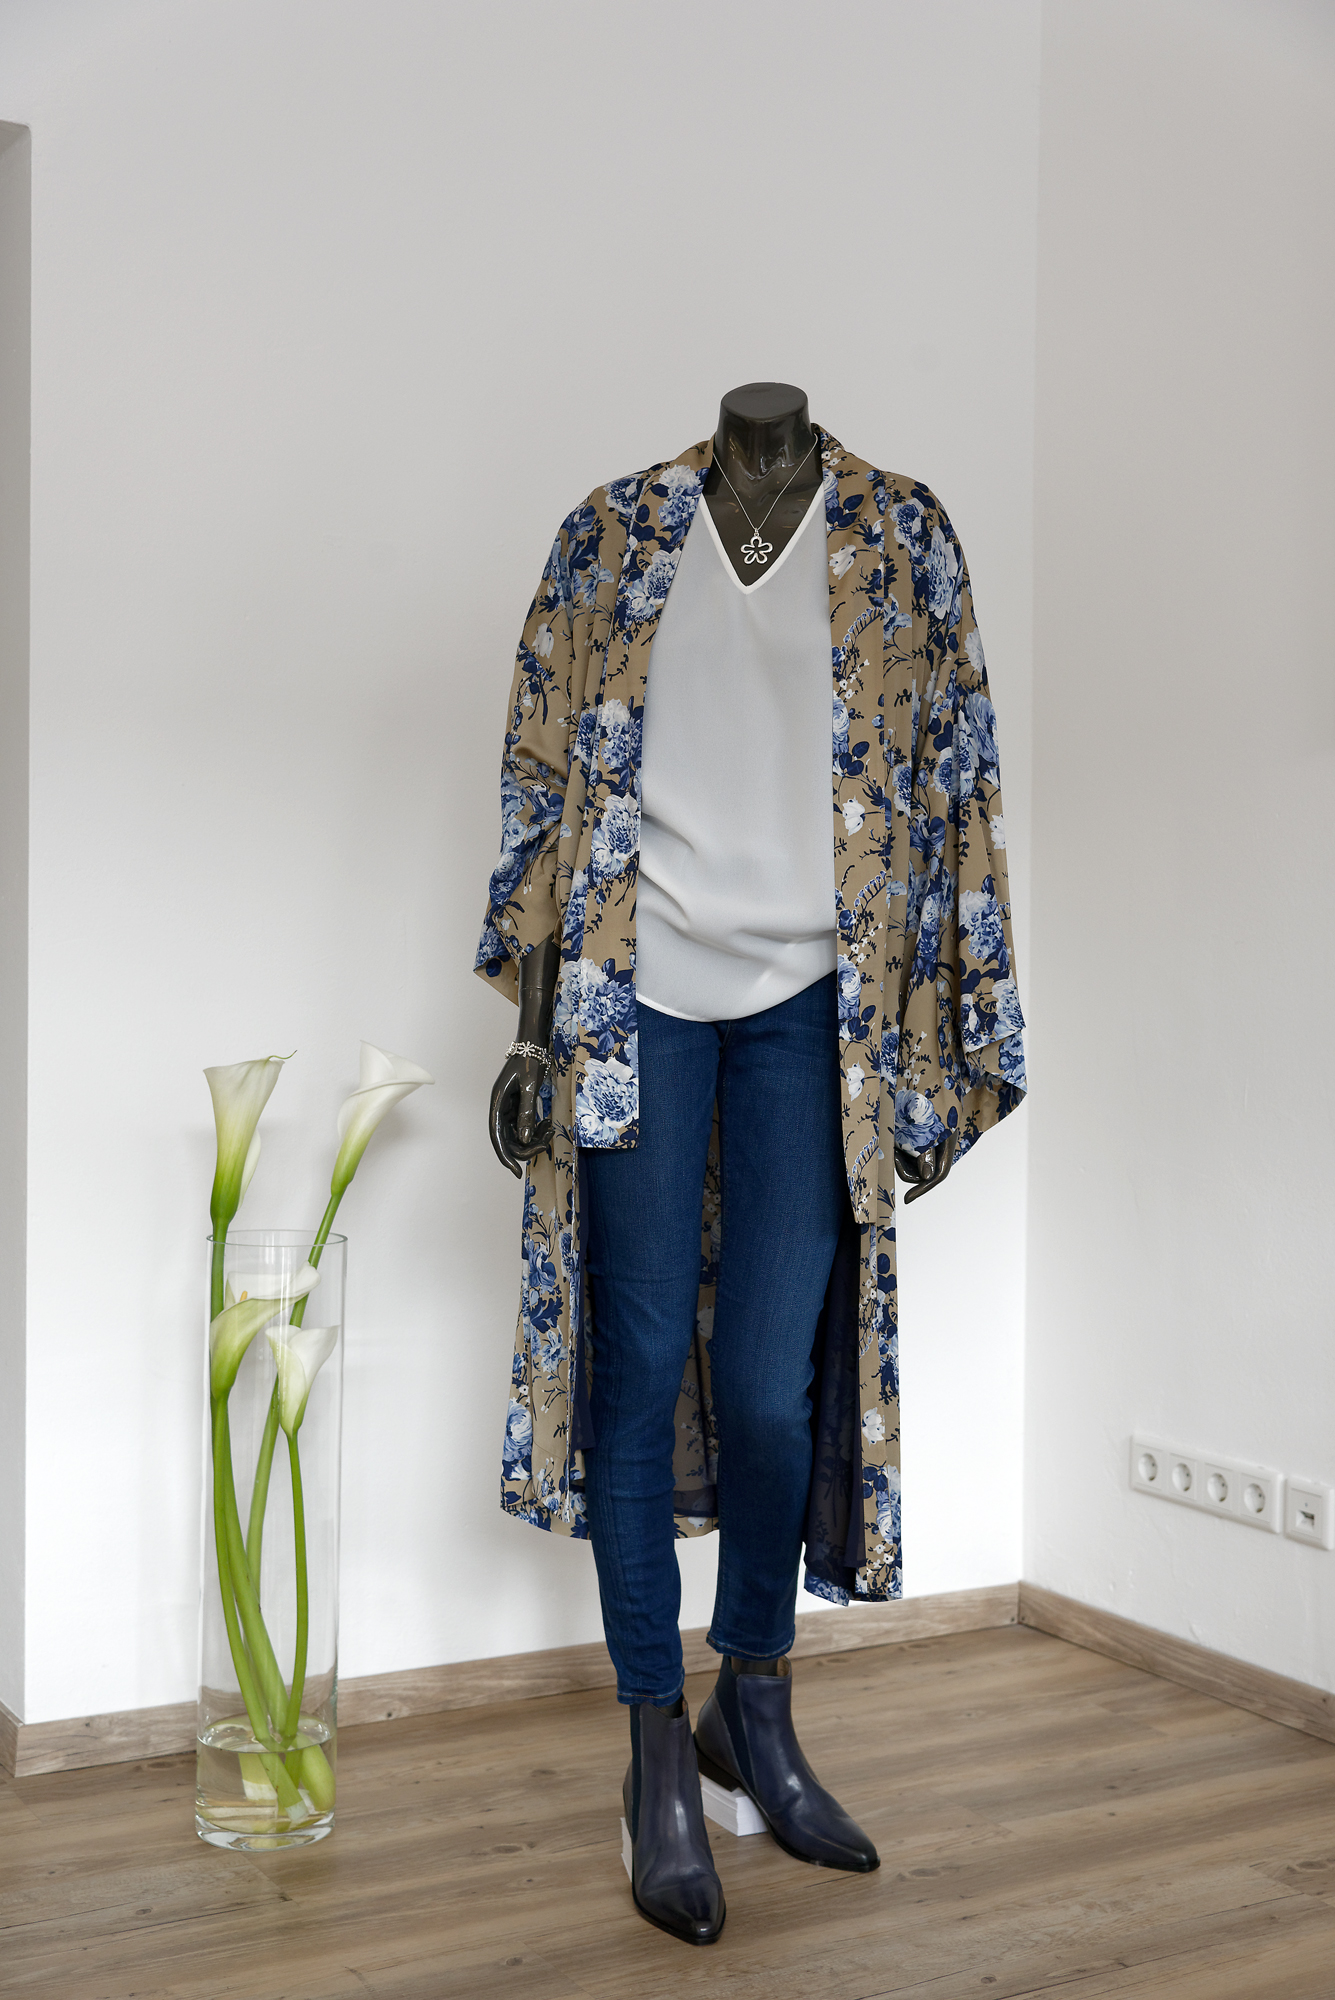 98e5a9eeff0fd7 Outfit mit Kimono: Damenmode in Hannover - Modegeschäft STANDART